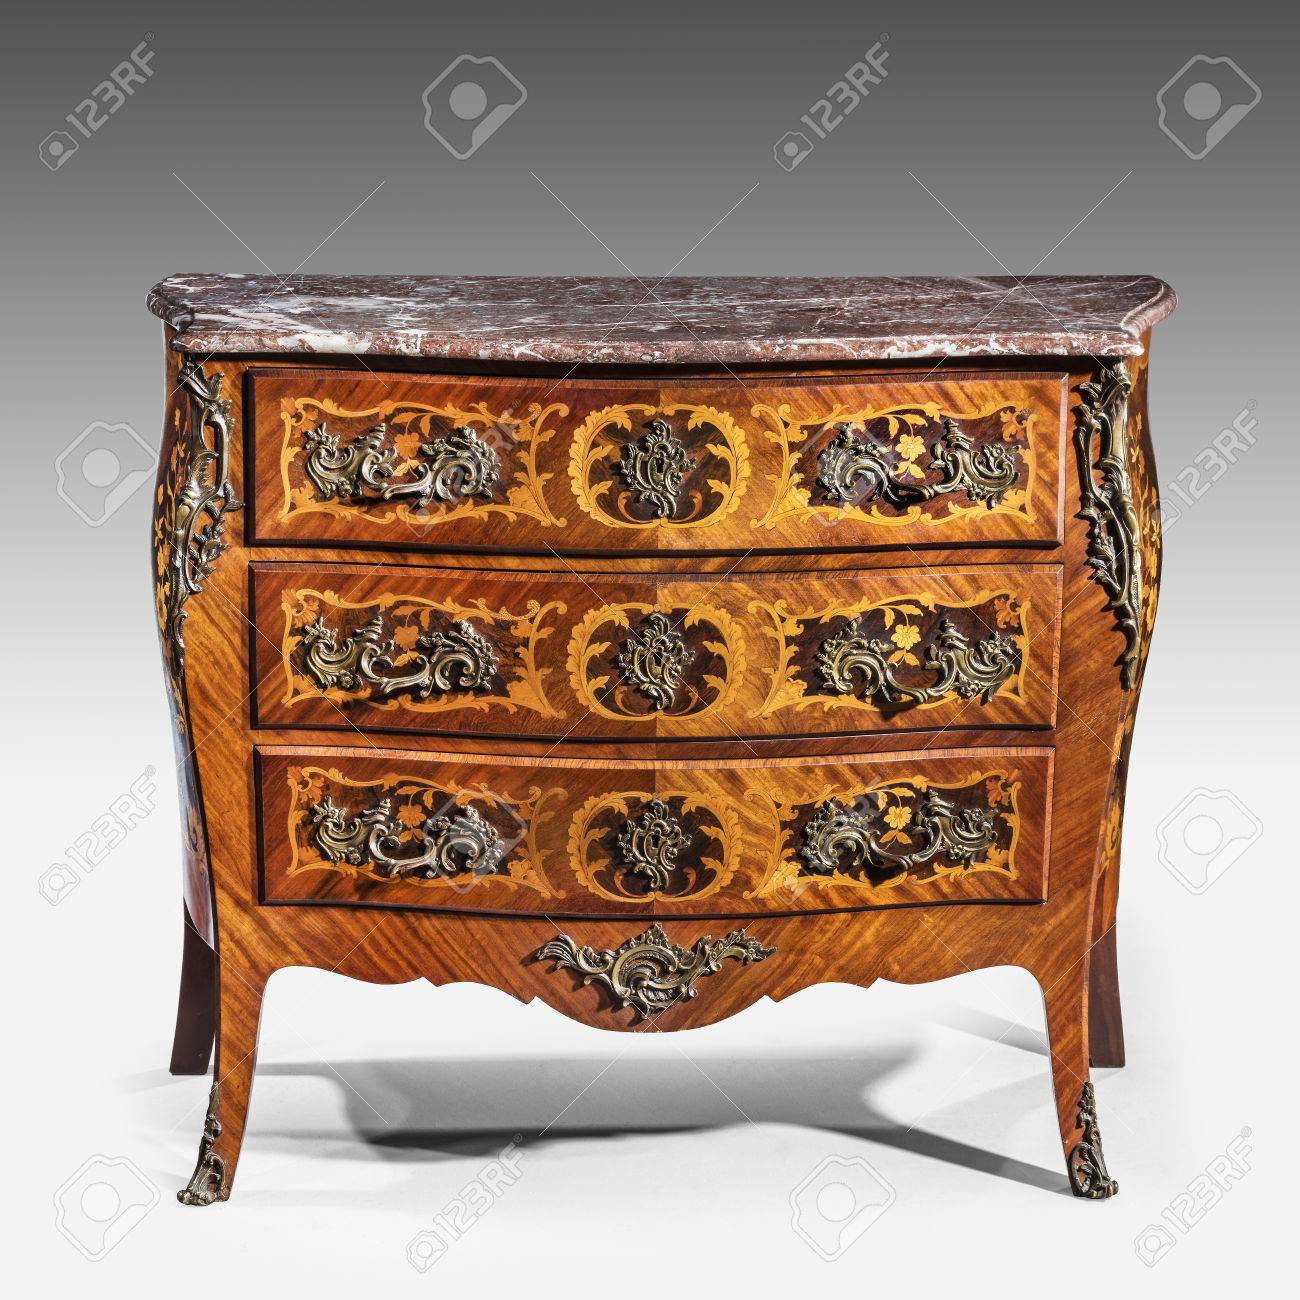 Old Vintage Antique Chest Of Drawers Known As Commode Wood Inlaid